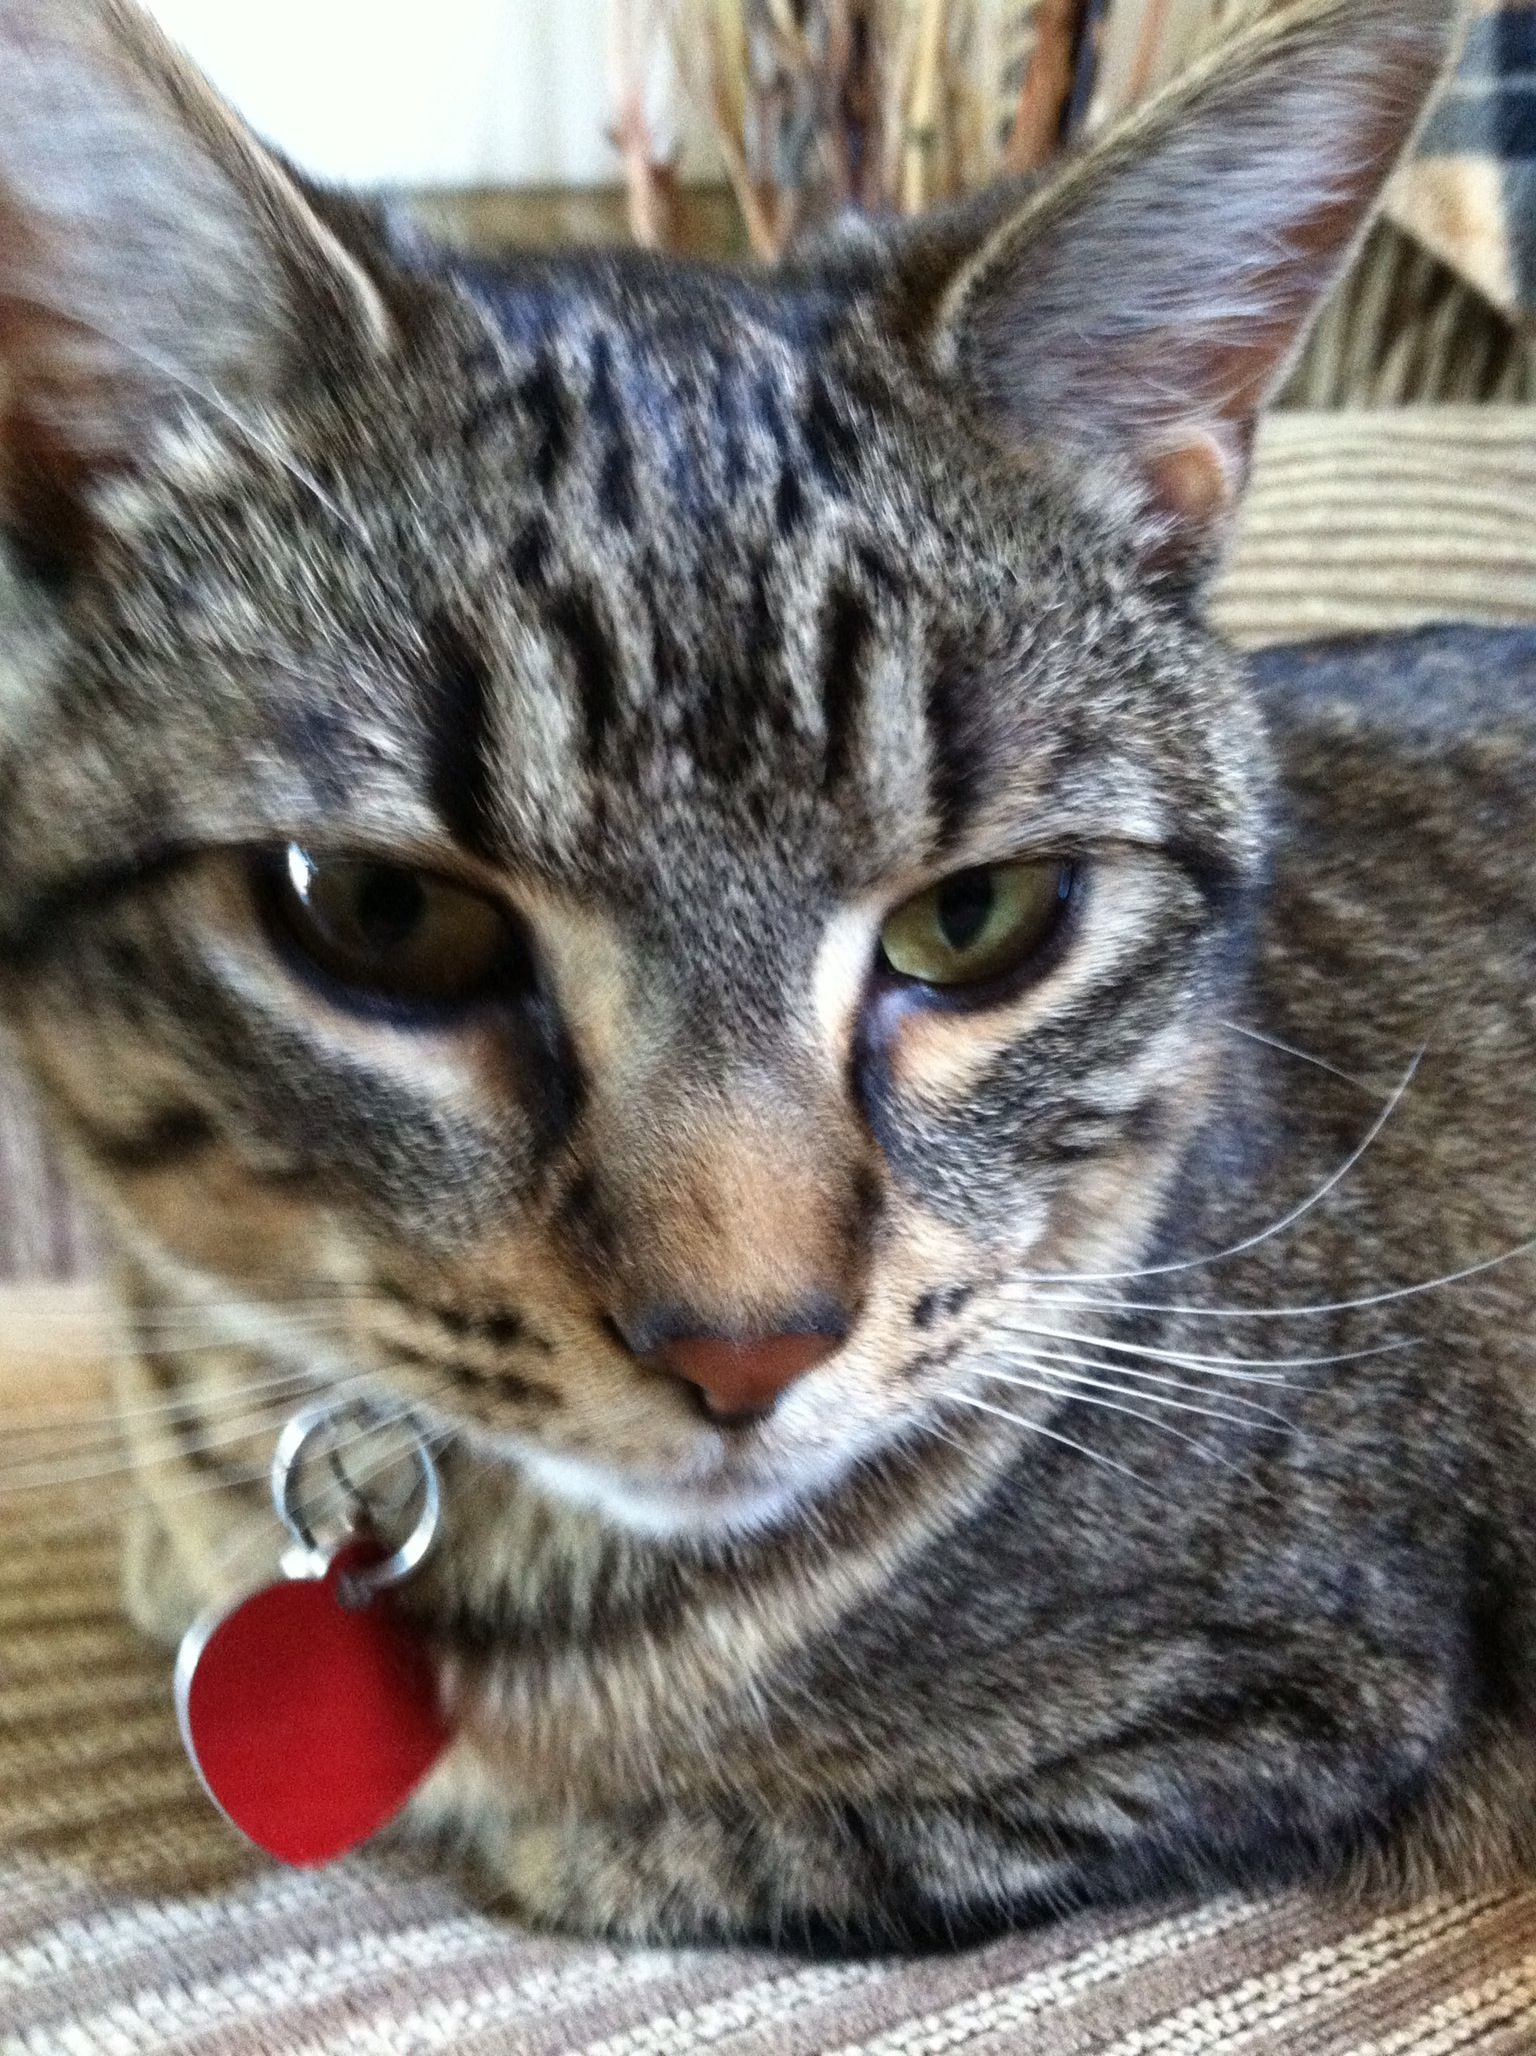 BROWN TABBY CATS on Pinterest | Tabby Cats, Kittens and Cat